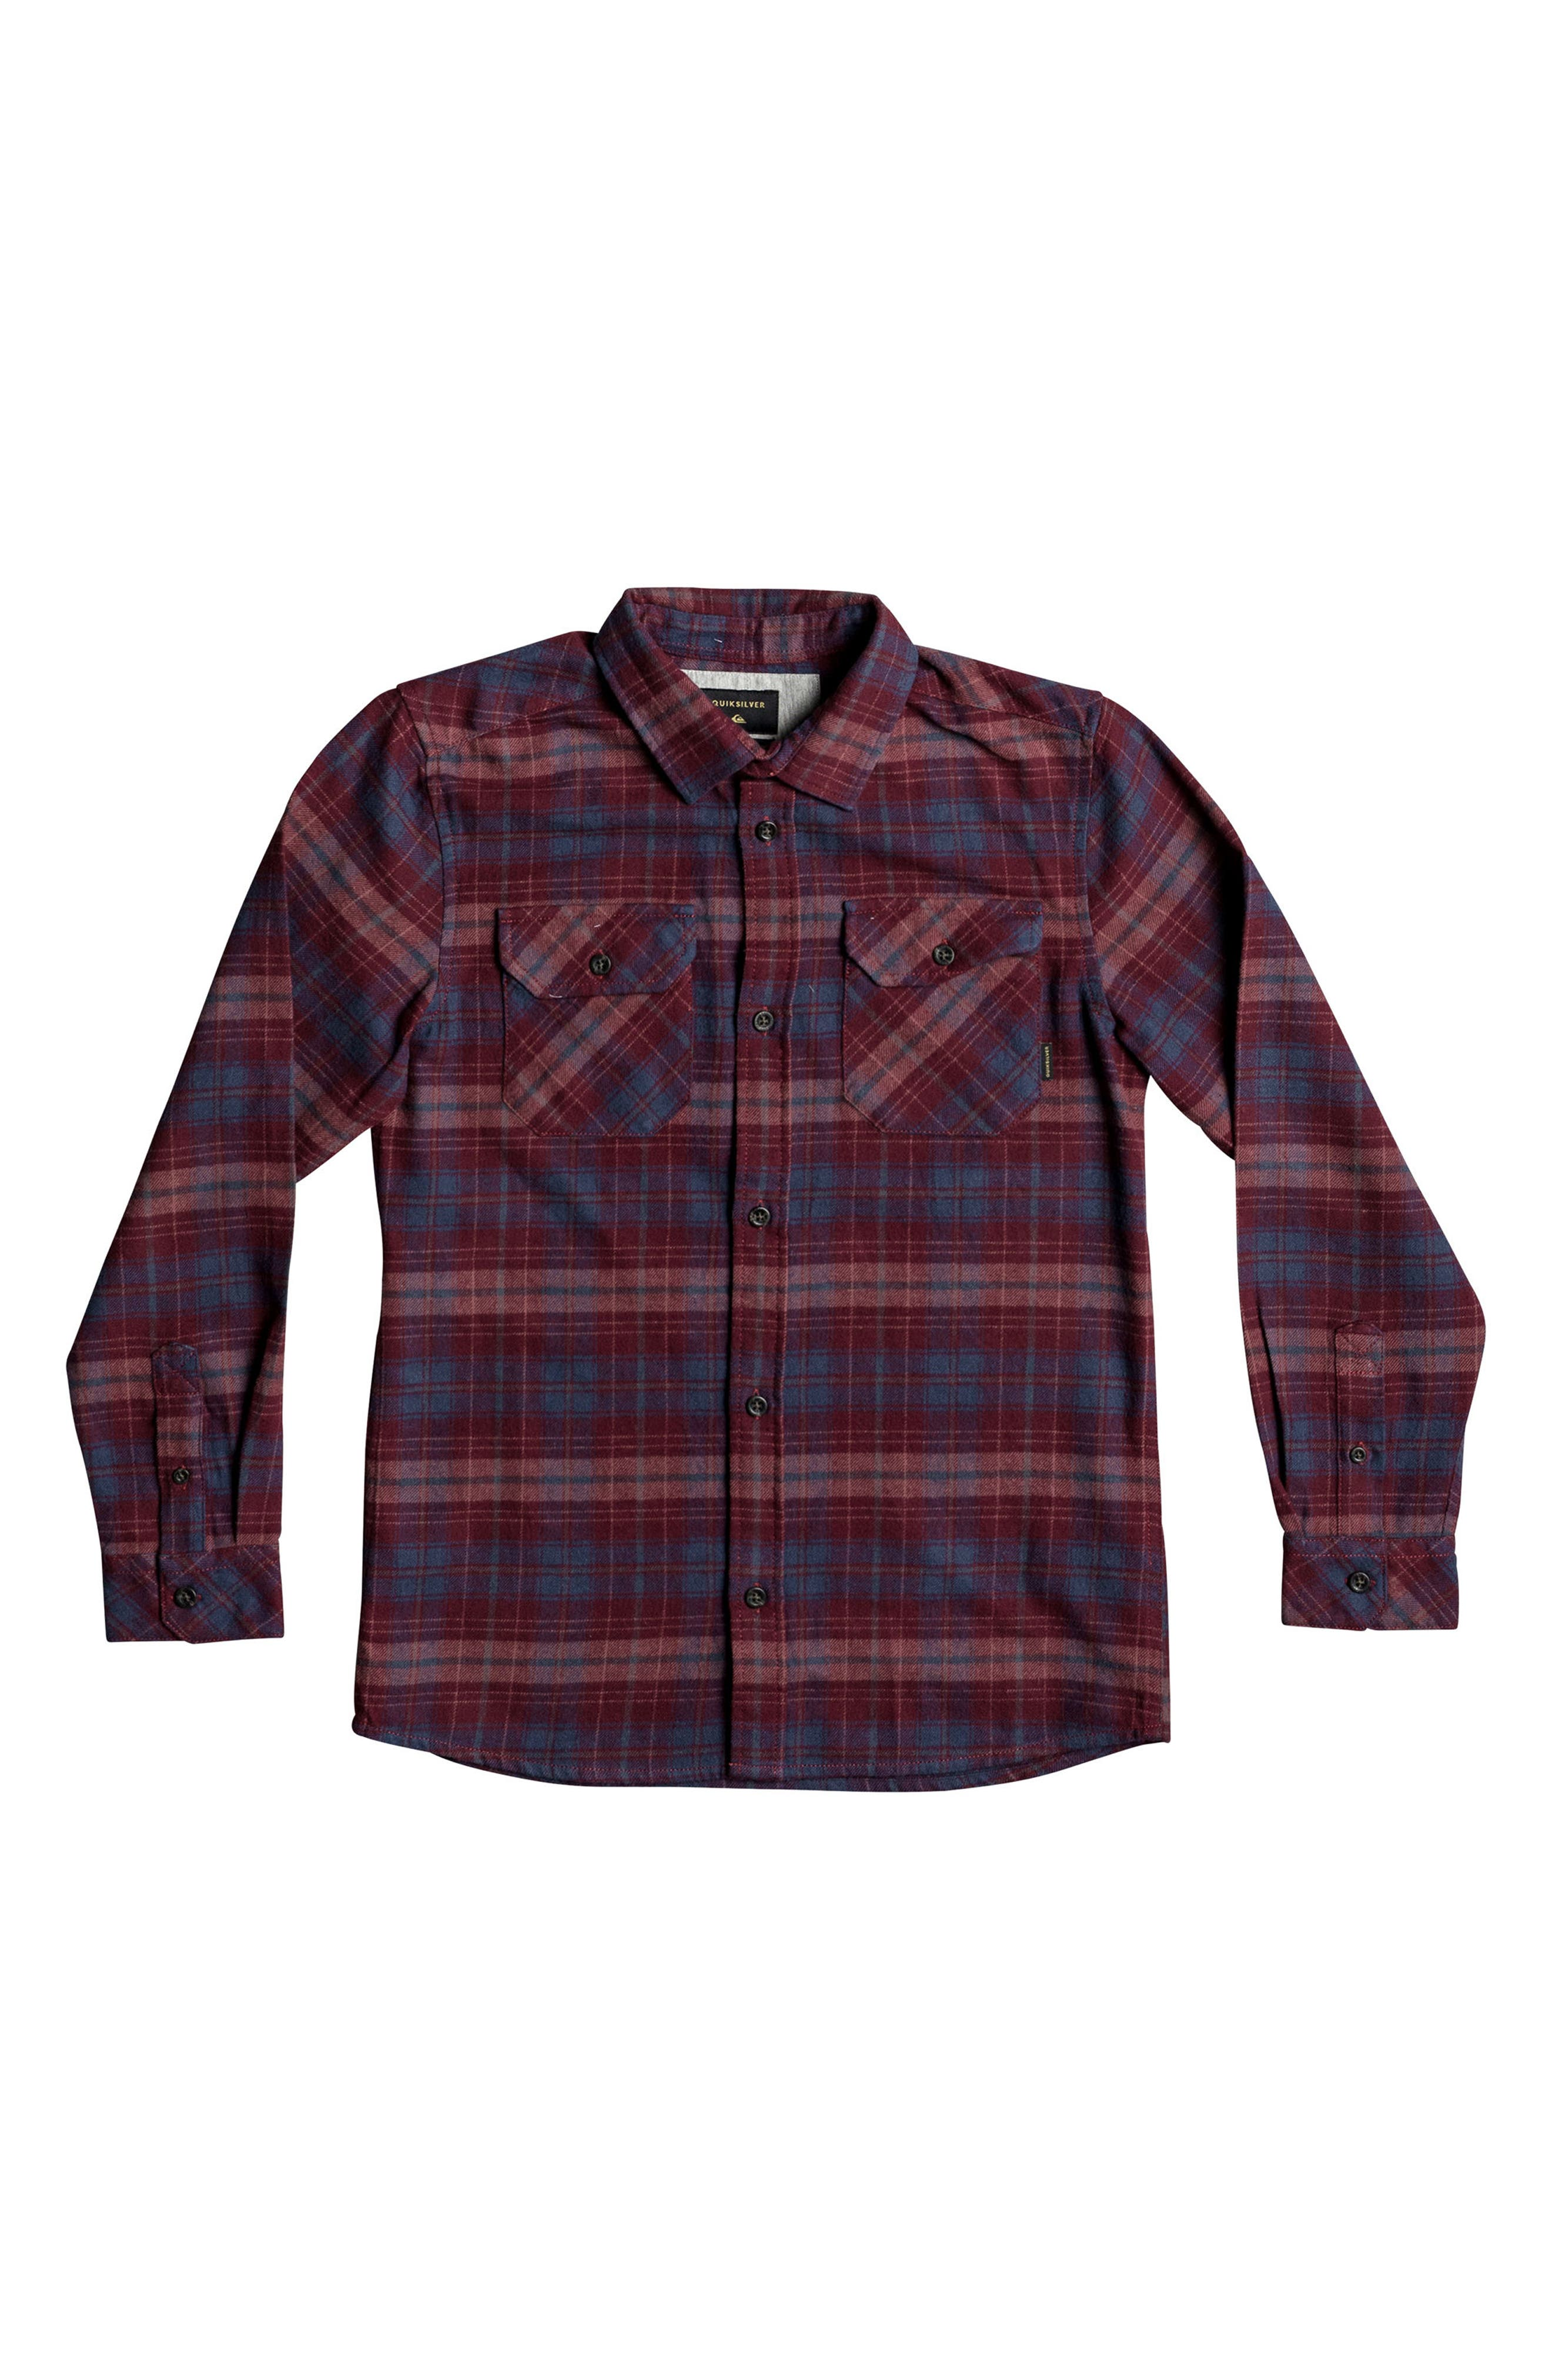 Fitzspeere Plaid Flannel Shirt,                             Main thumbnail 1, color,                             Winsdsor